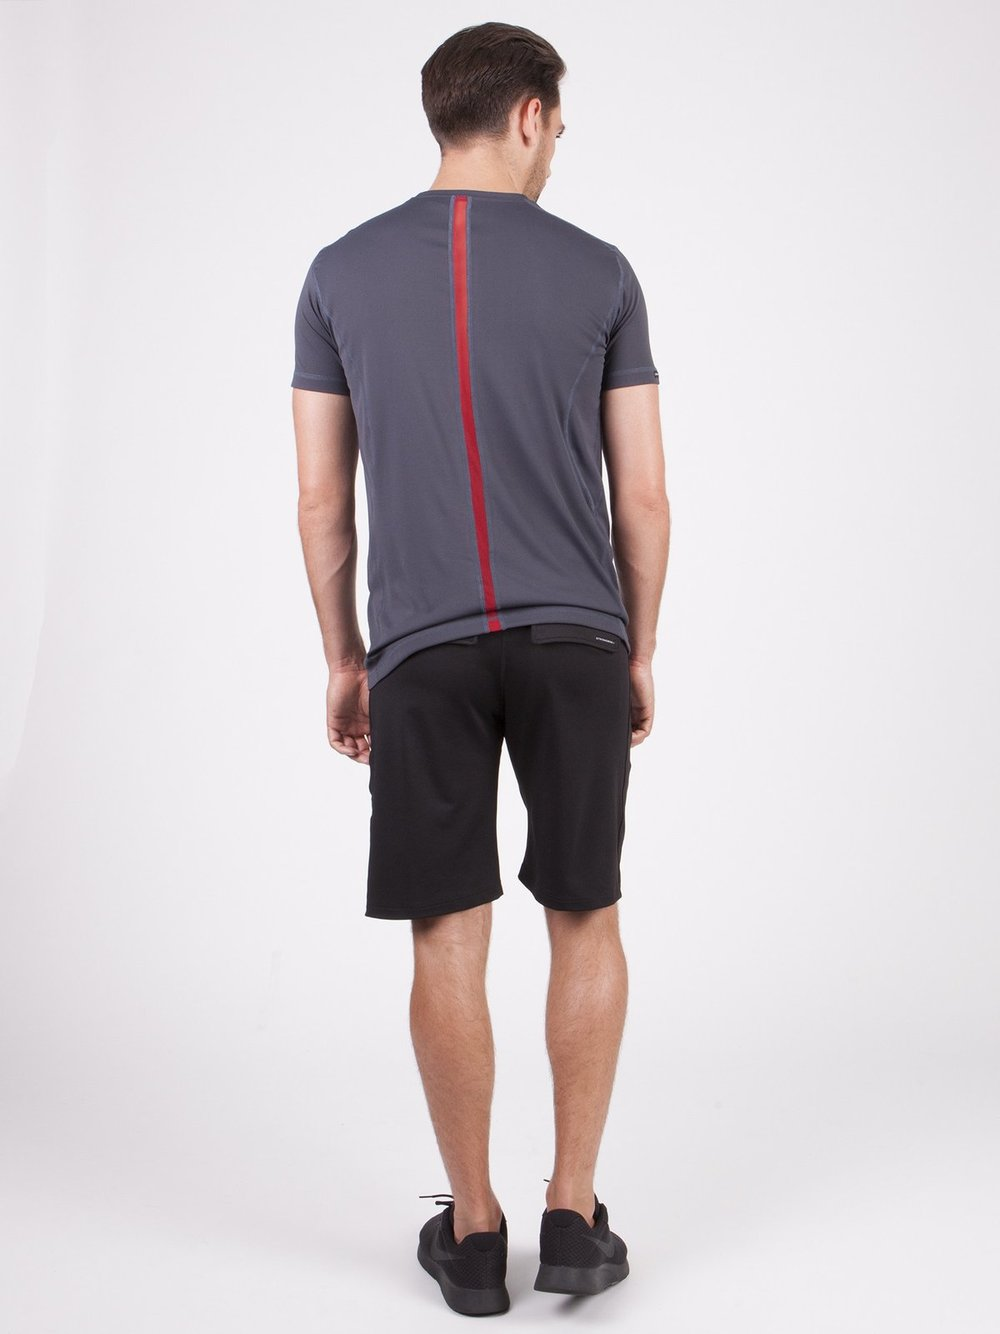 pulse_elite_tee_back_1200x.jpg